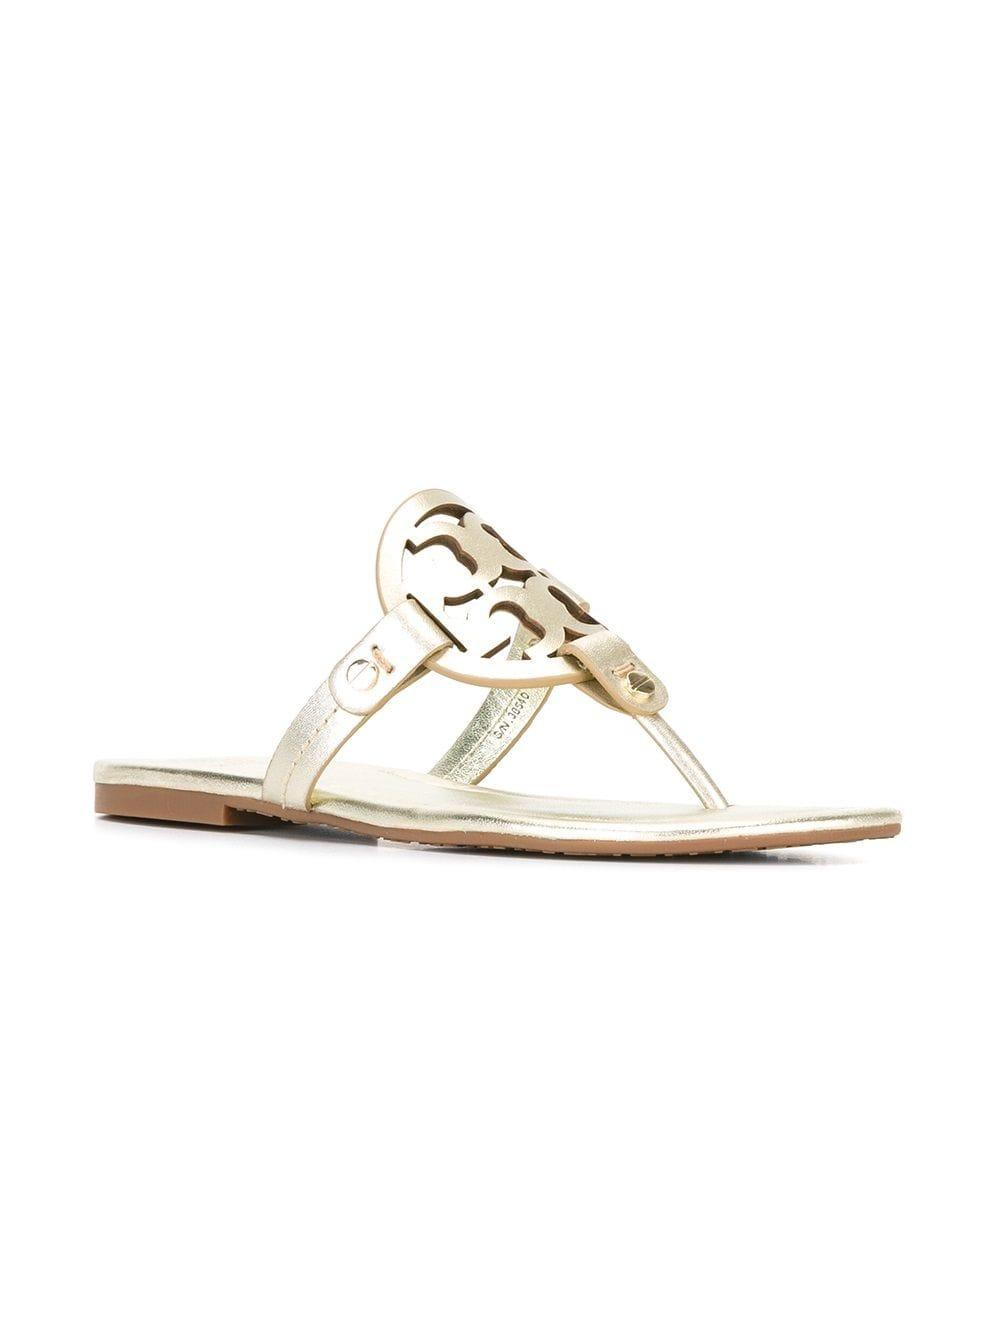 094bf85aca48 Tory Burch - Metallic Miller Leather Sandals - Lyst. View fullscreen